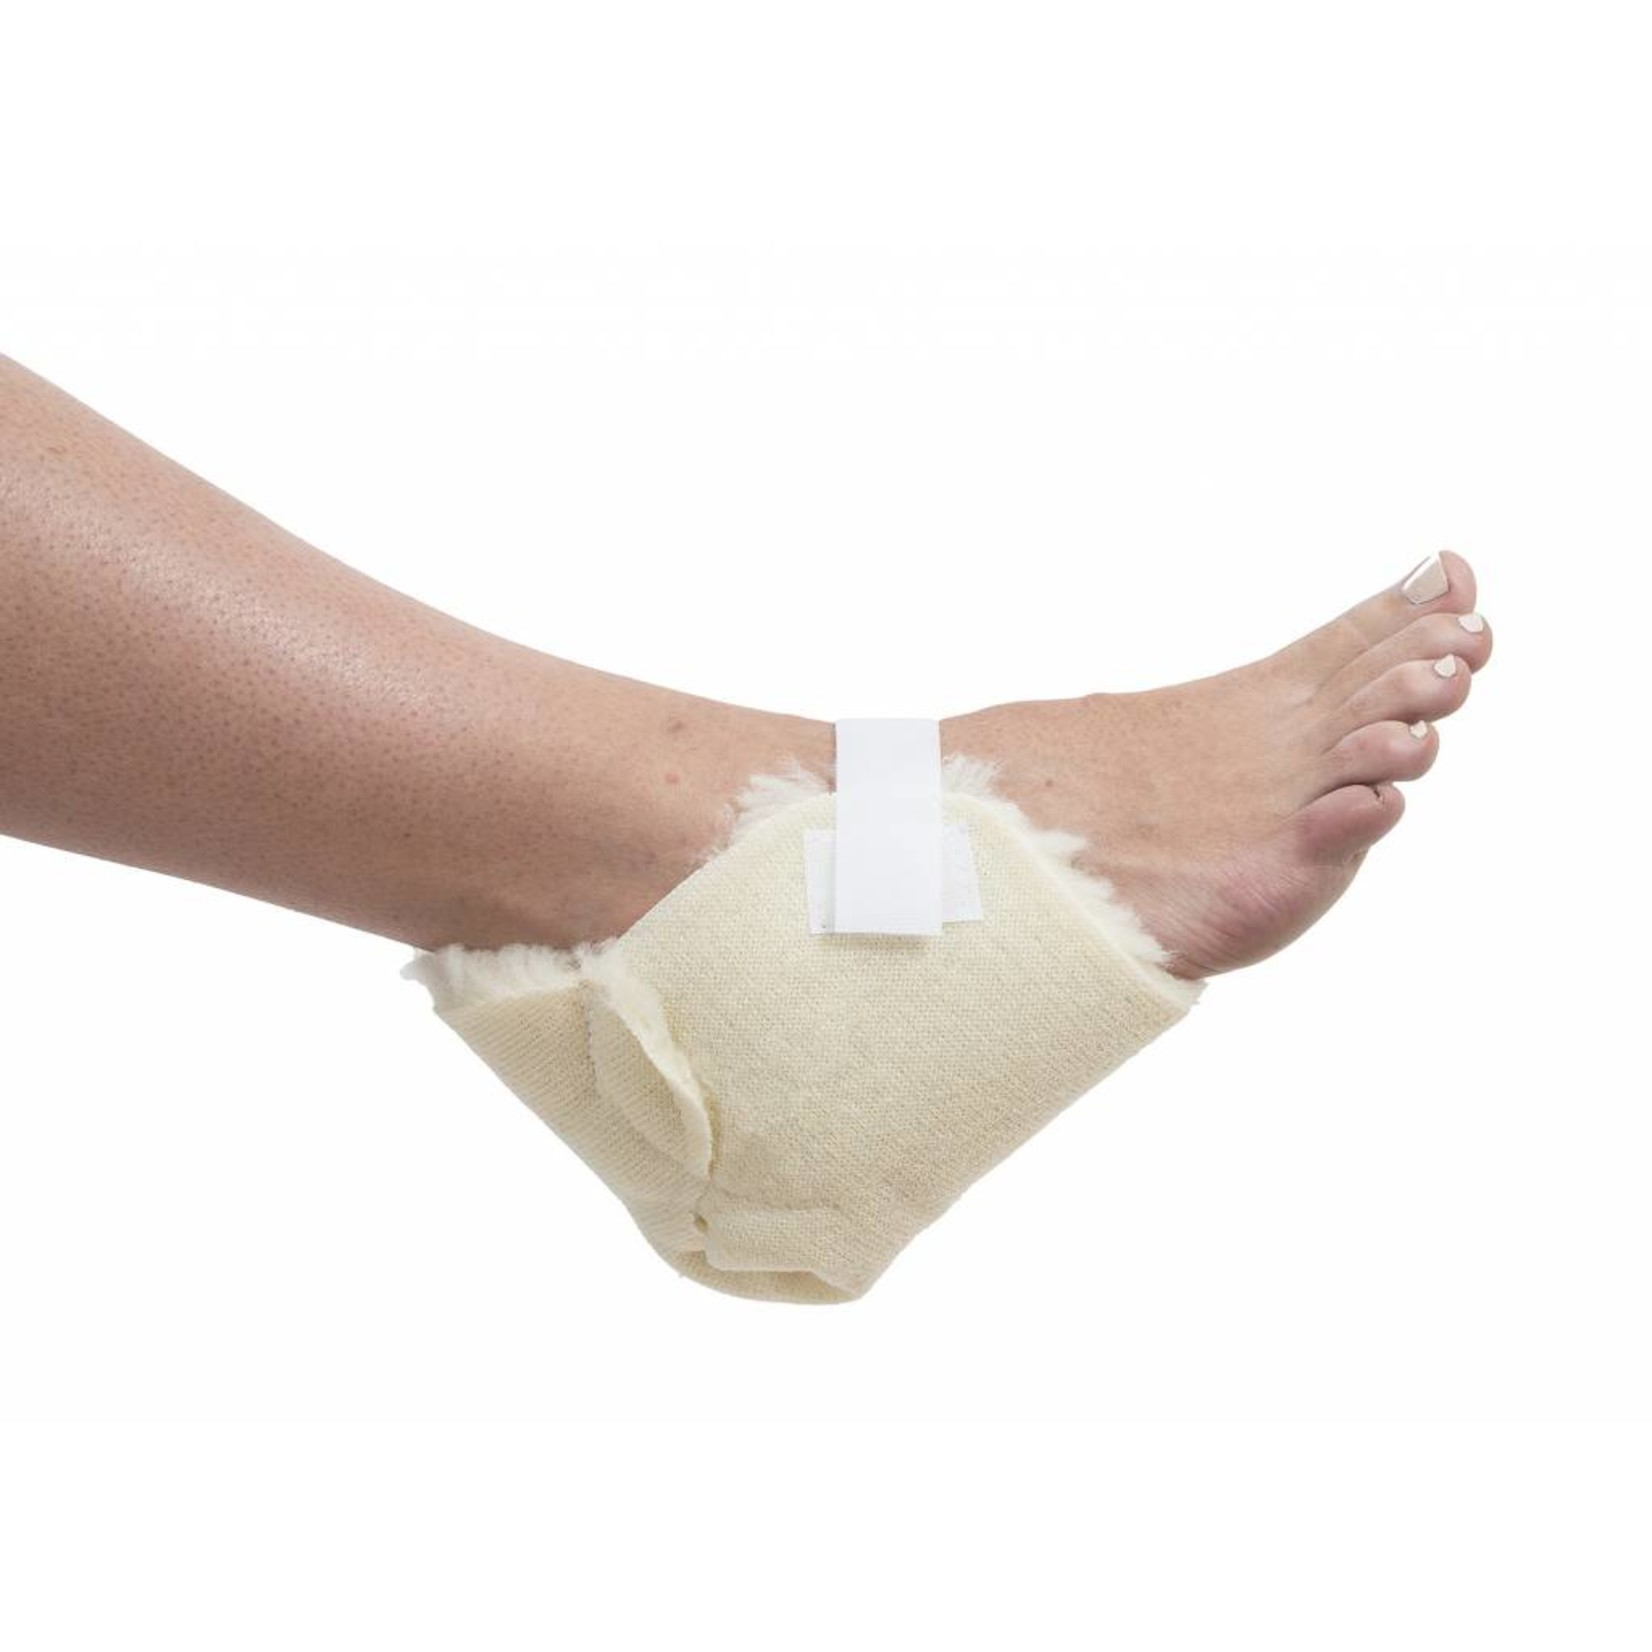 Essential Medical HEEL PROTECTOR SYNTH LAMBSKIN